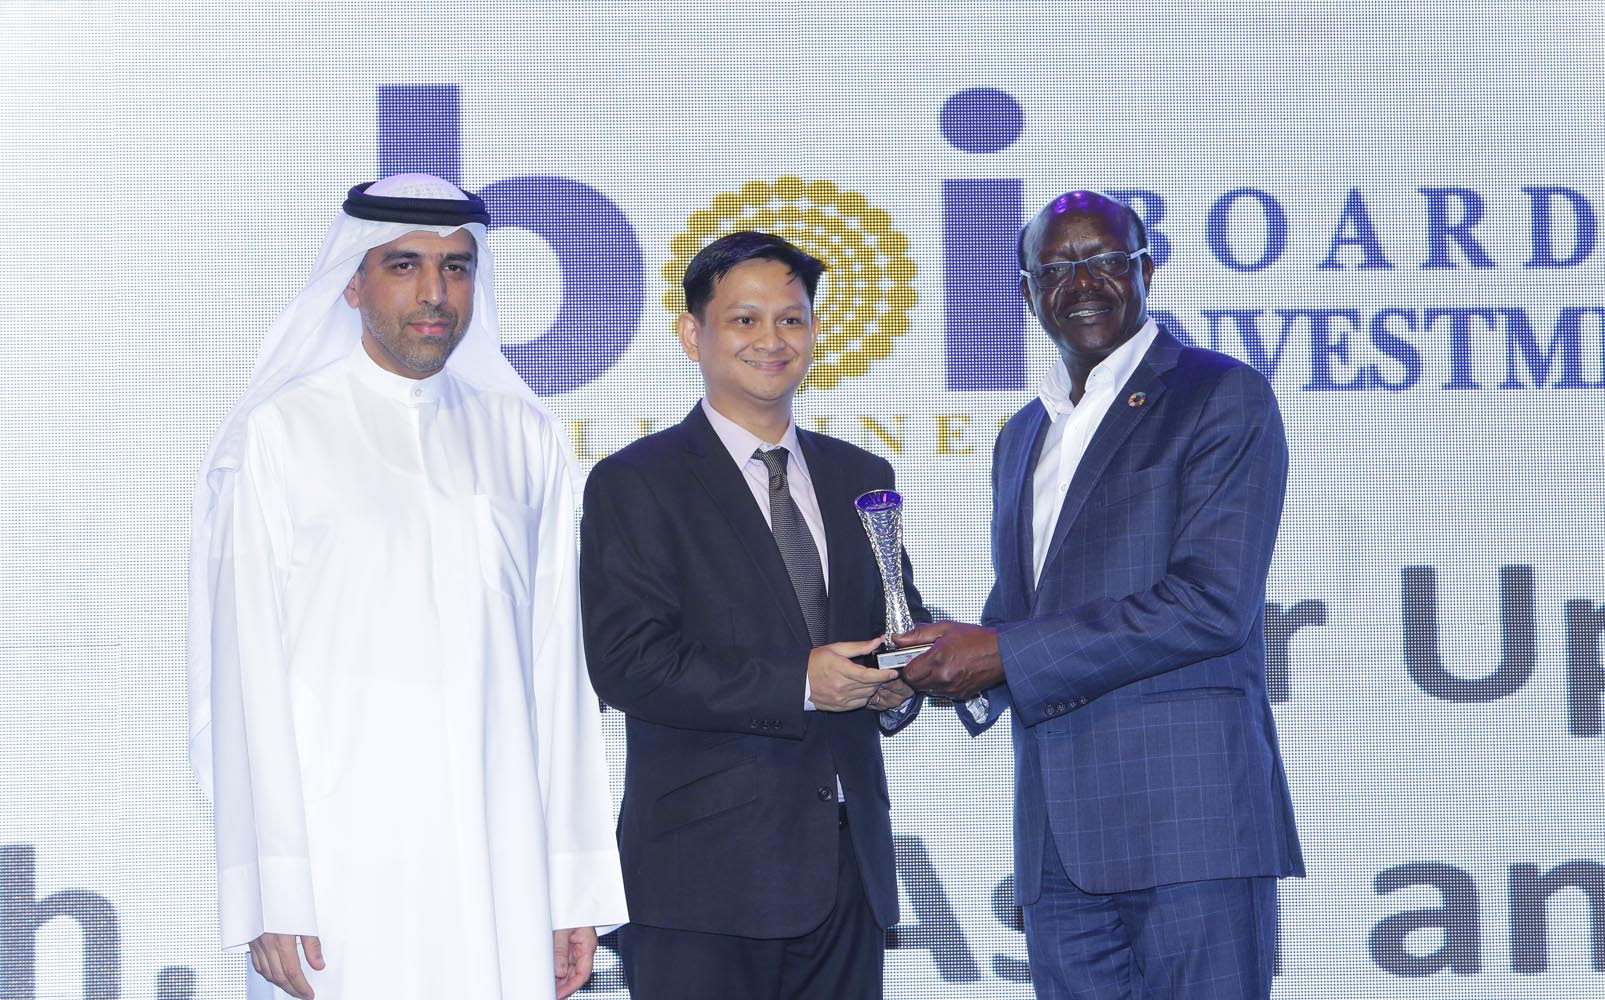 The Philippine Board of Investments (BOI) has proven once again its service excellence in promoting and driving strategic and socially-relevant investments in the country as the agency was recently conferred as Second Best Investment Promotion Agency (IPA) among countries of the Southeast Asia and Oceana (SEAO) region in the 2017 Annual Investment Meeting (AIM) Awards held in Dubai. (PNA photo)